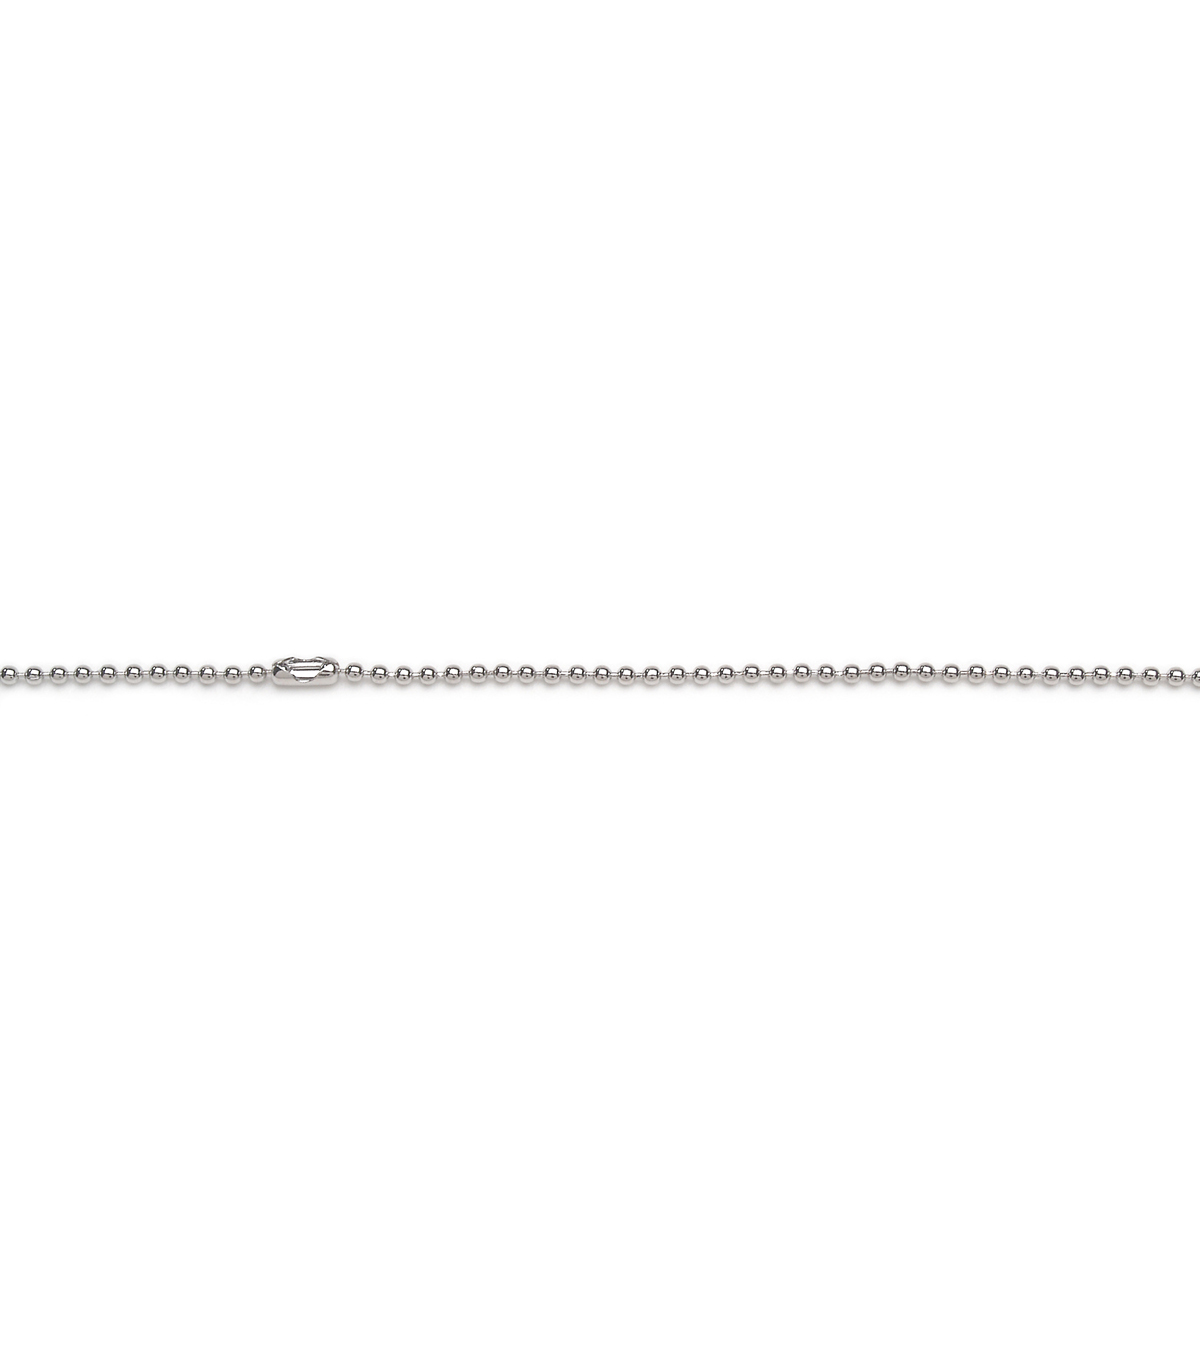 1Mm Ball Chain 24 Inch Nickel